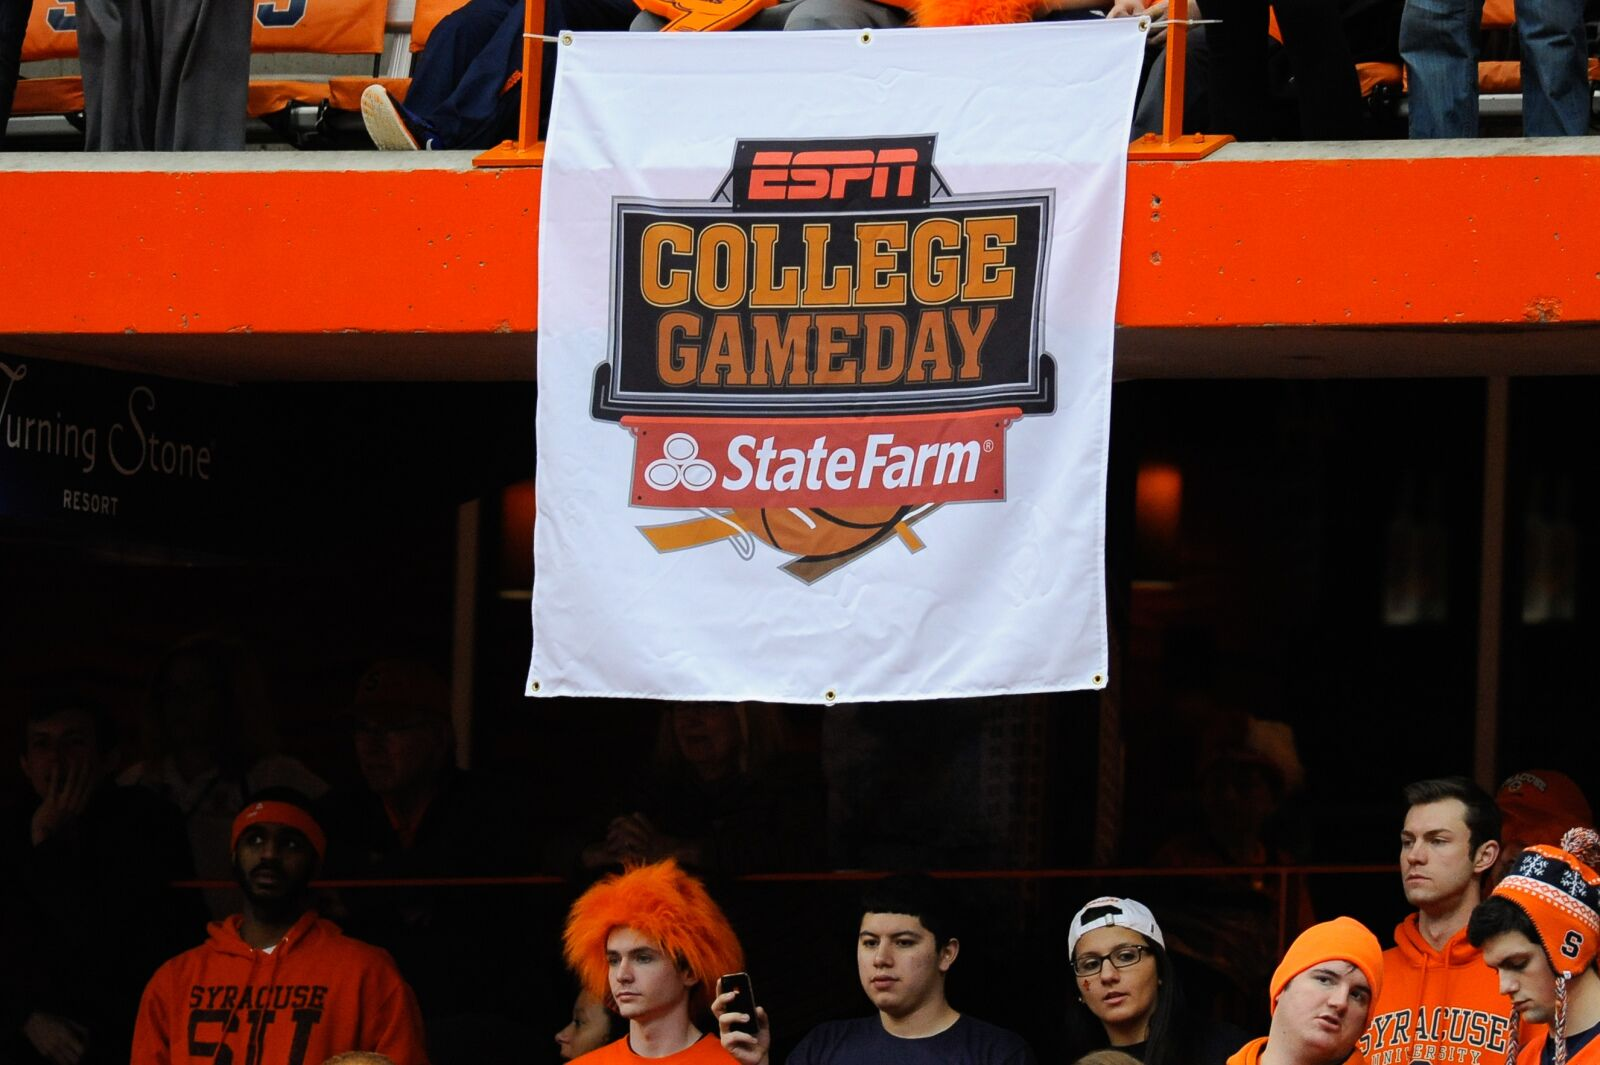 Duke Basketball Espn Pulls Gameday From Syracuse After Accident